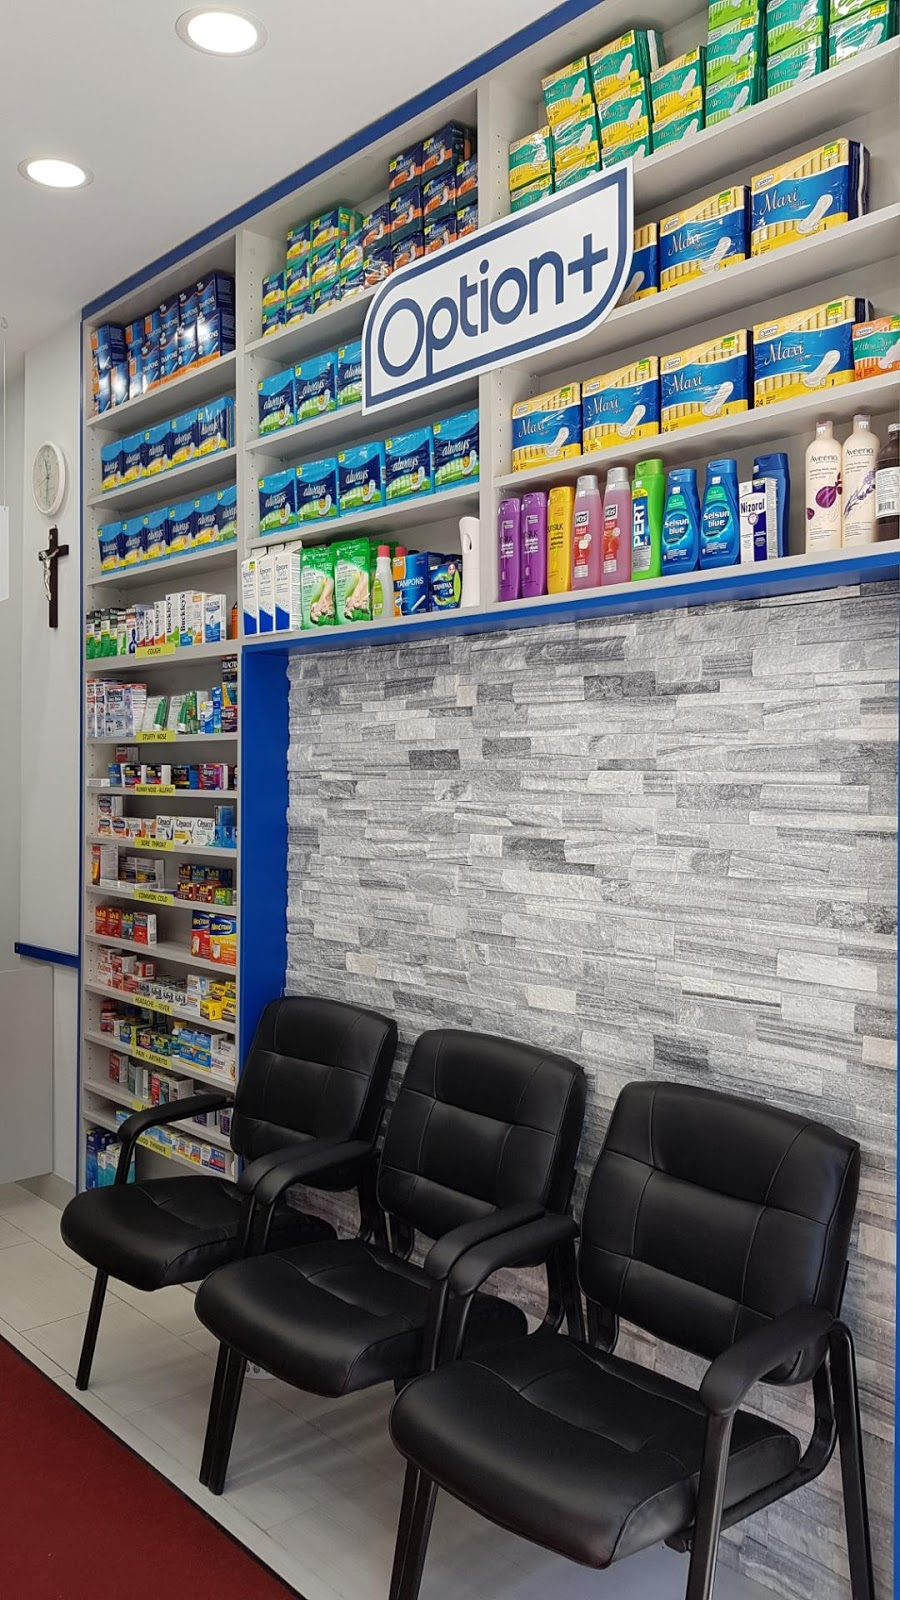 St. Mary Pharmacy | health | 796 Queen St E, Toronto, ON M4M 1H4, Canada | 4167780078 OR +1 416-778-0078